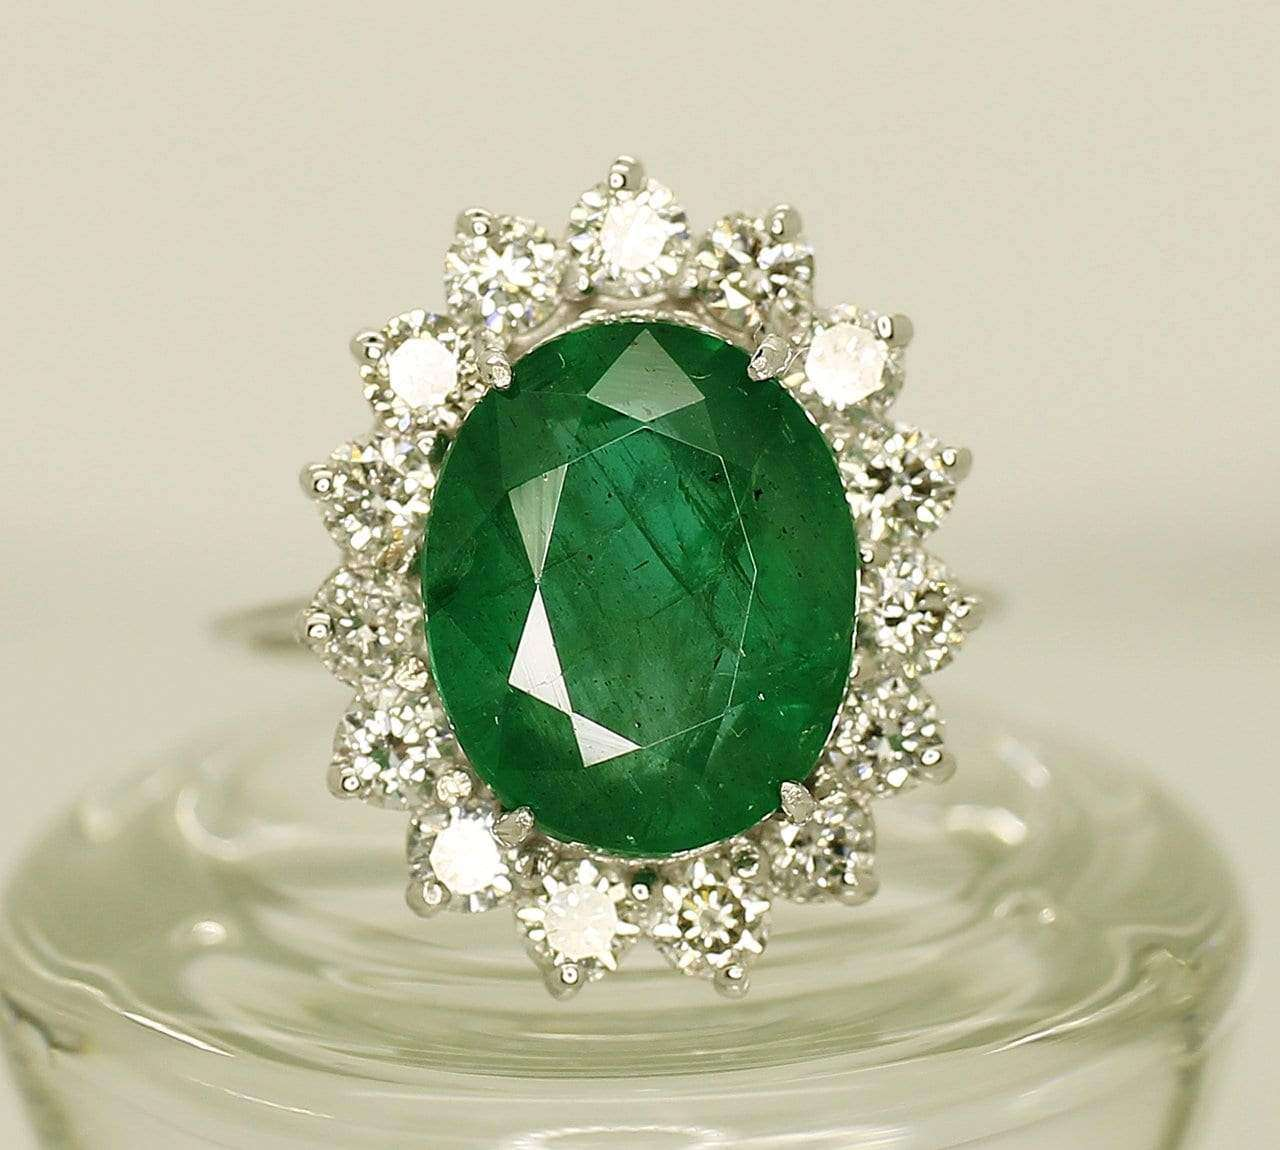 14K White Gold AIG Certified Emerald 4.72ct Diamond 0.37ct Ring - Aquagems.eu